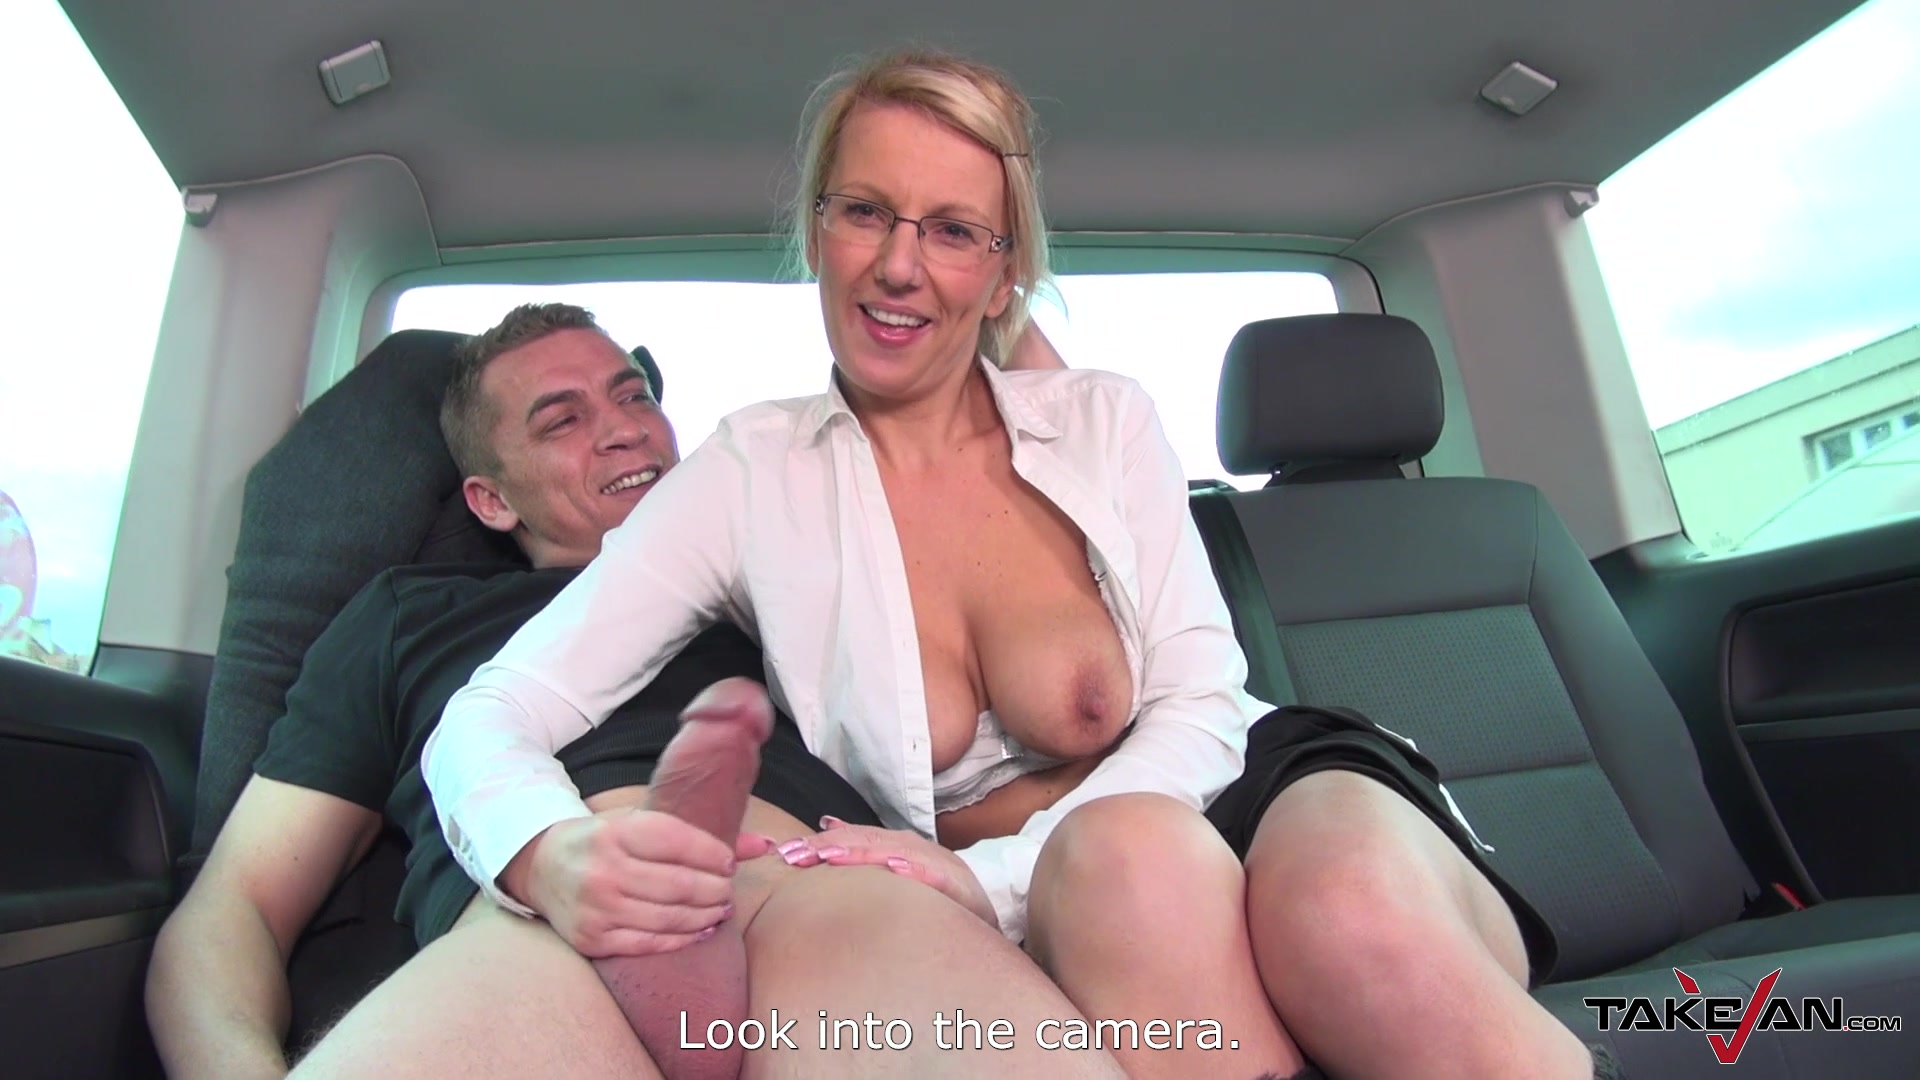 Hooker fucked in car english subs - 2 2